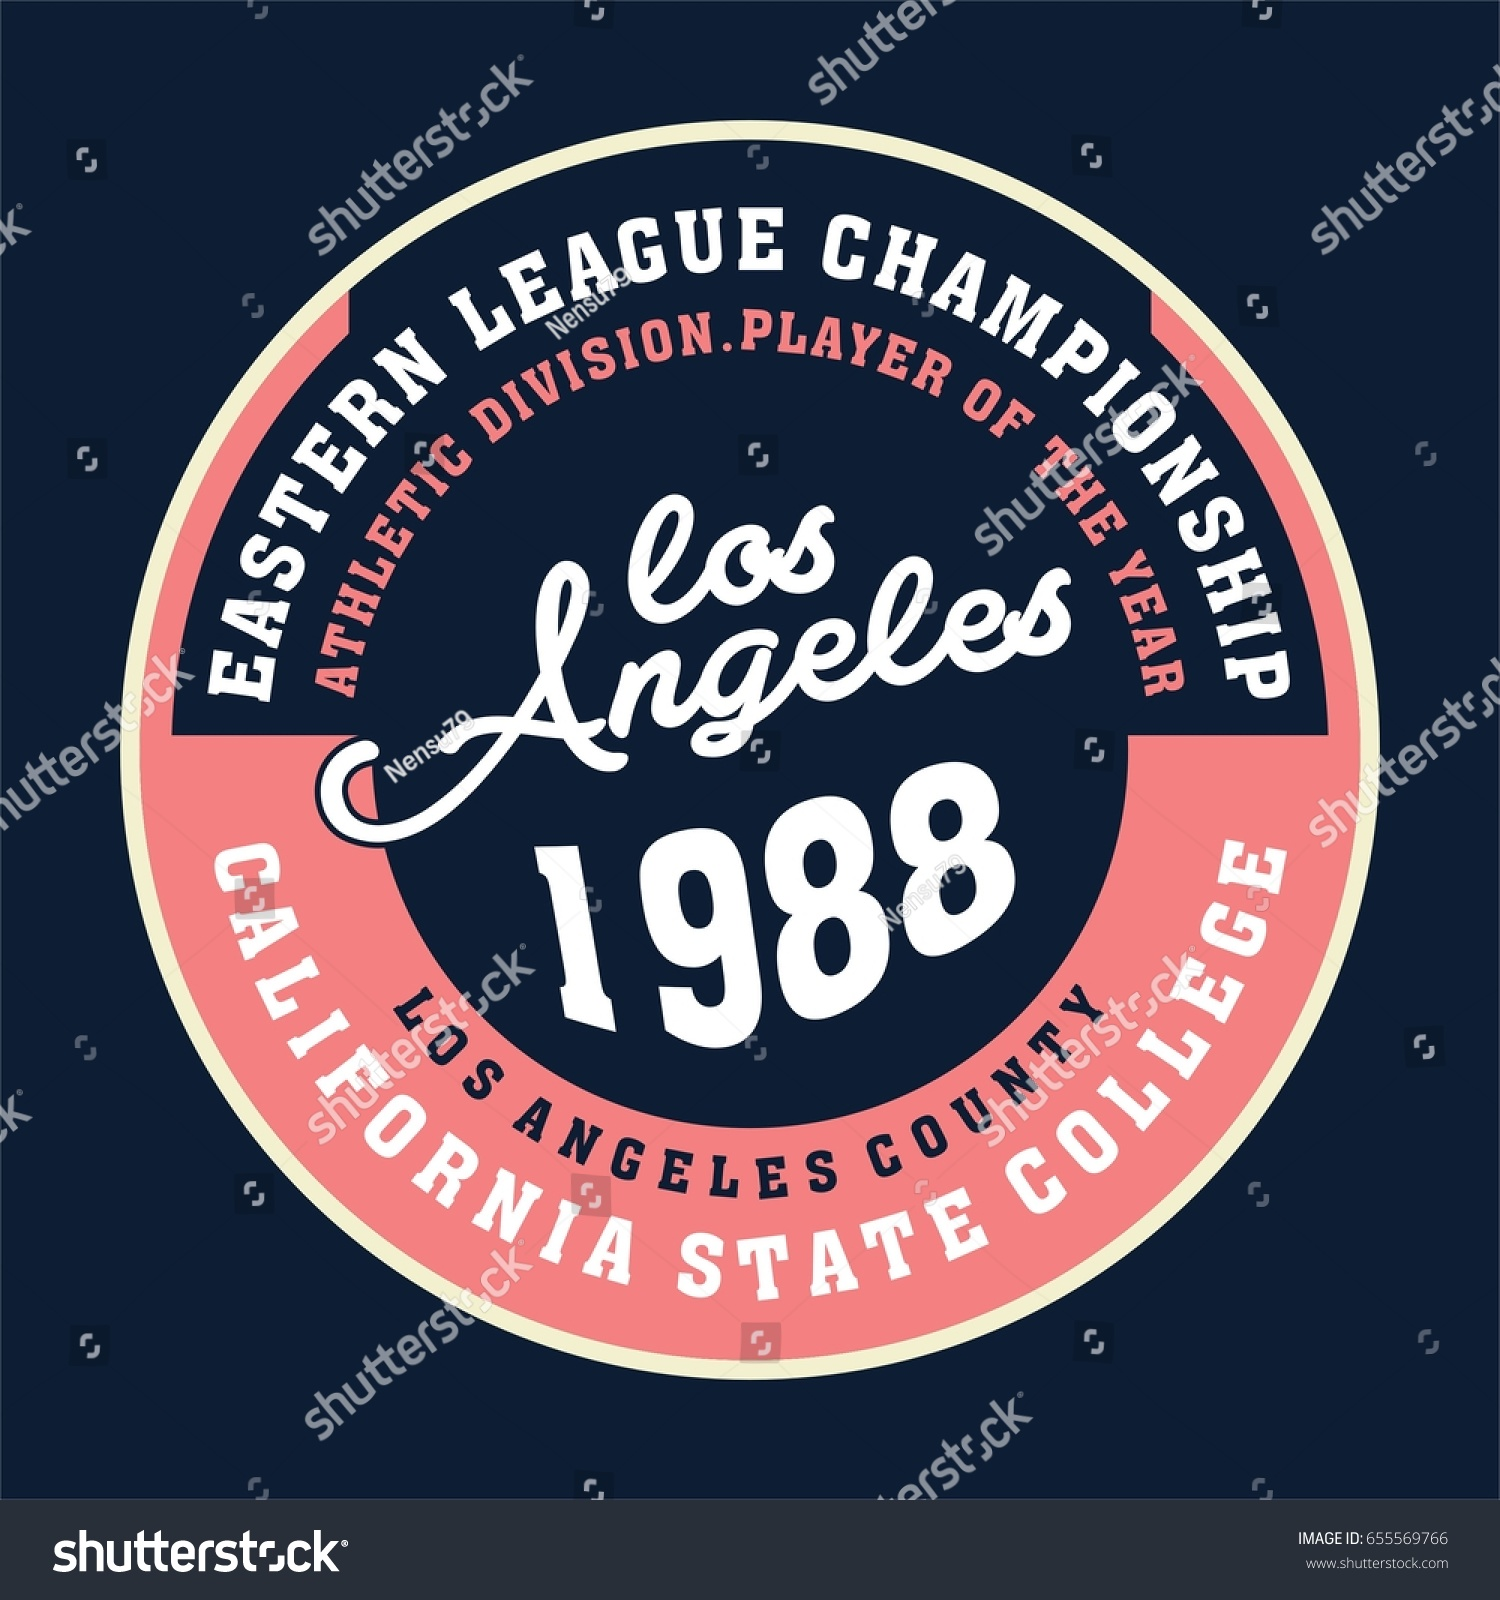 Design t shirts los angeles - Design Letters And Numbers Los Angeles Champion State For T Shirts